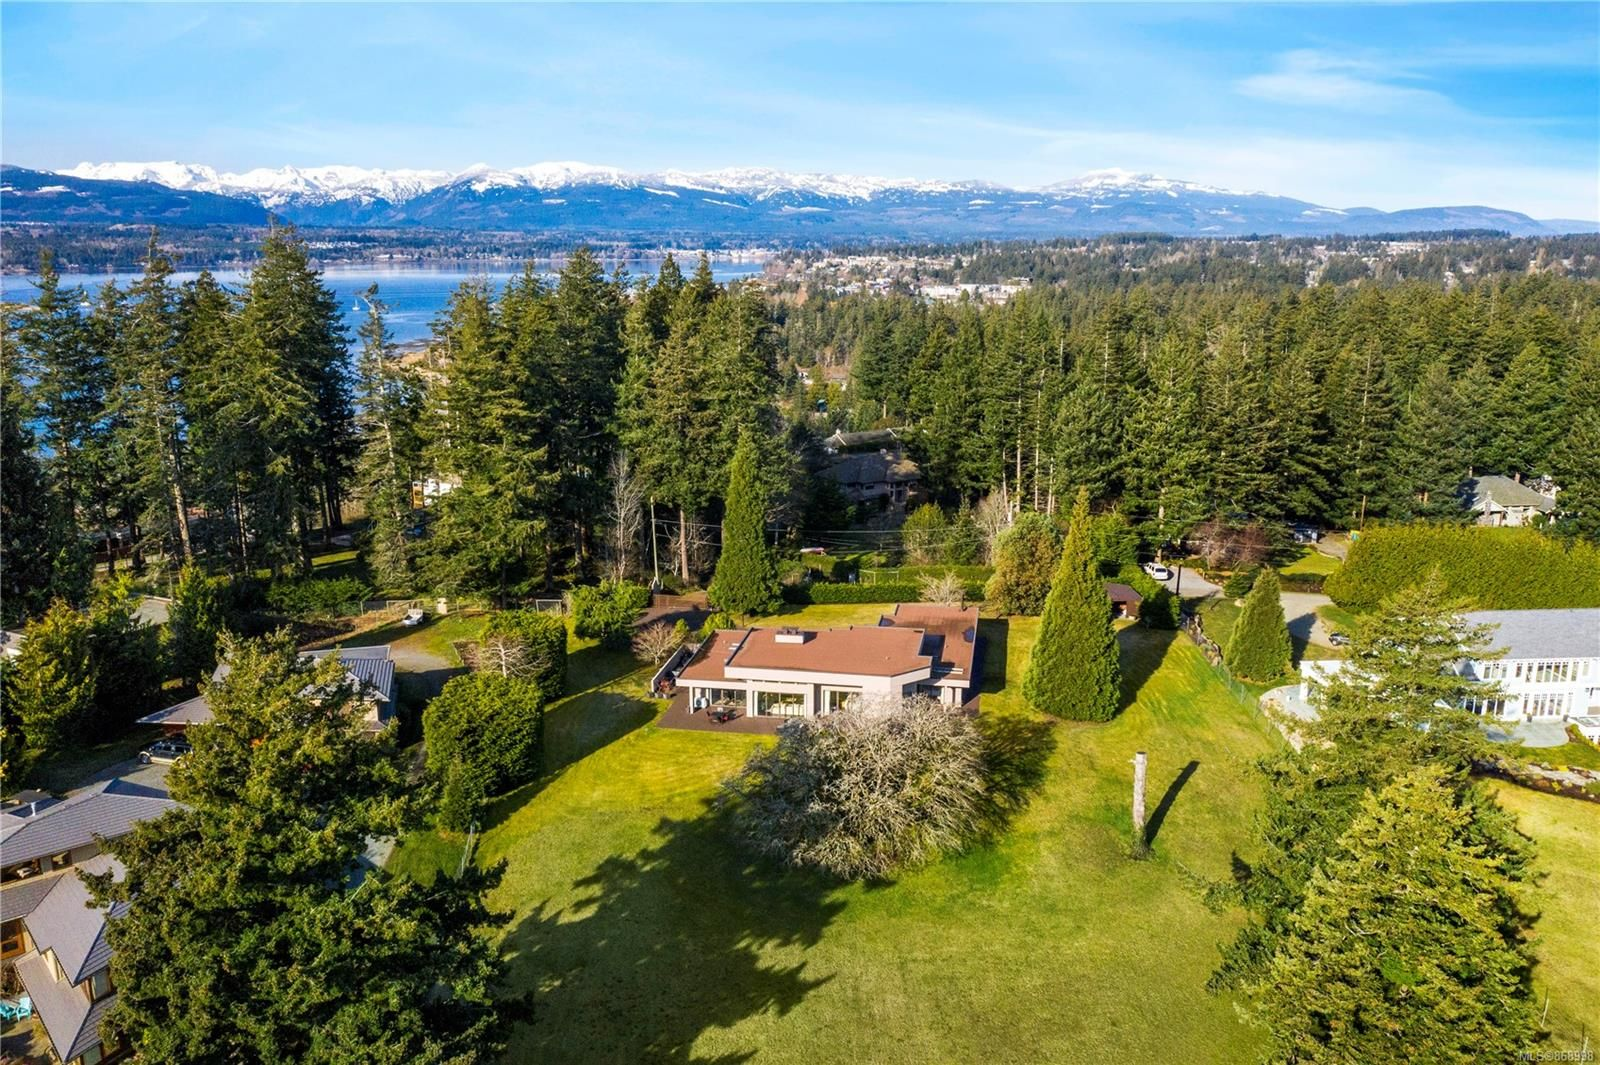 Main Photo: 104 Sandcliff Dr in : CV Comox Peninsula House for sale (Comox Valley)  : MLS®# 868998